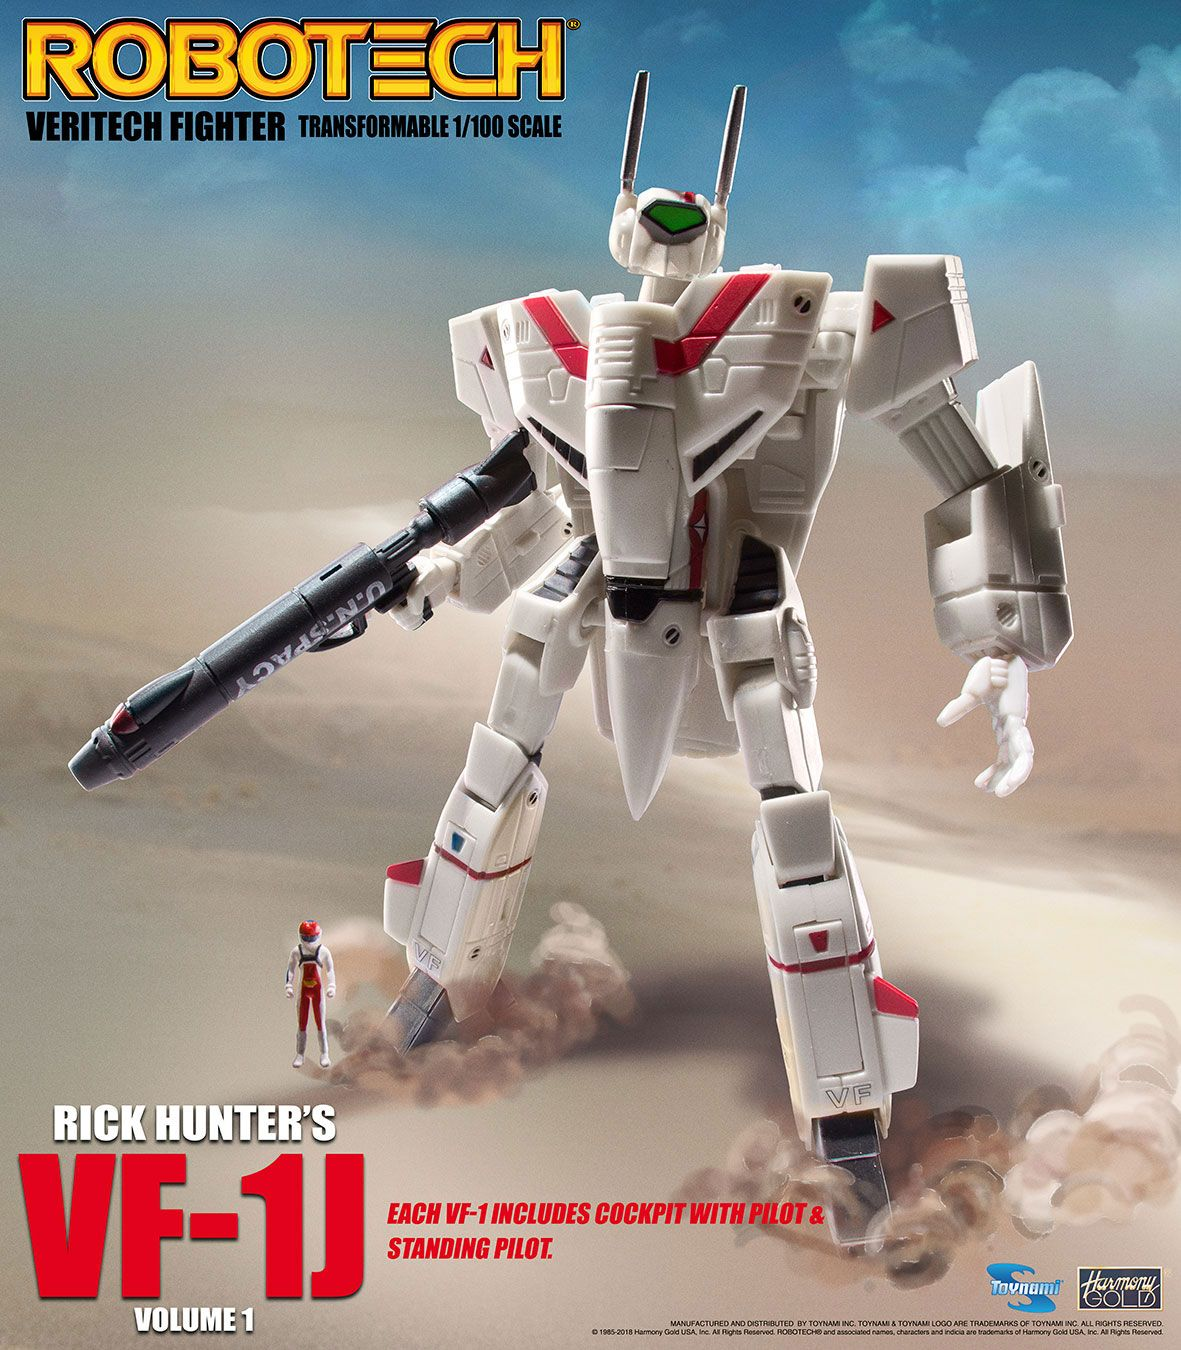 Robotech Veritech Micronian Pilot Collection Action Figure 1/100 Rick Hunter VF-1J 15 cm